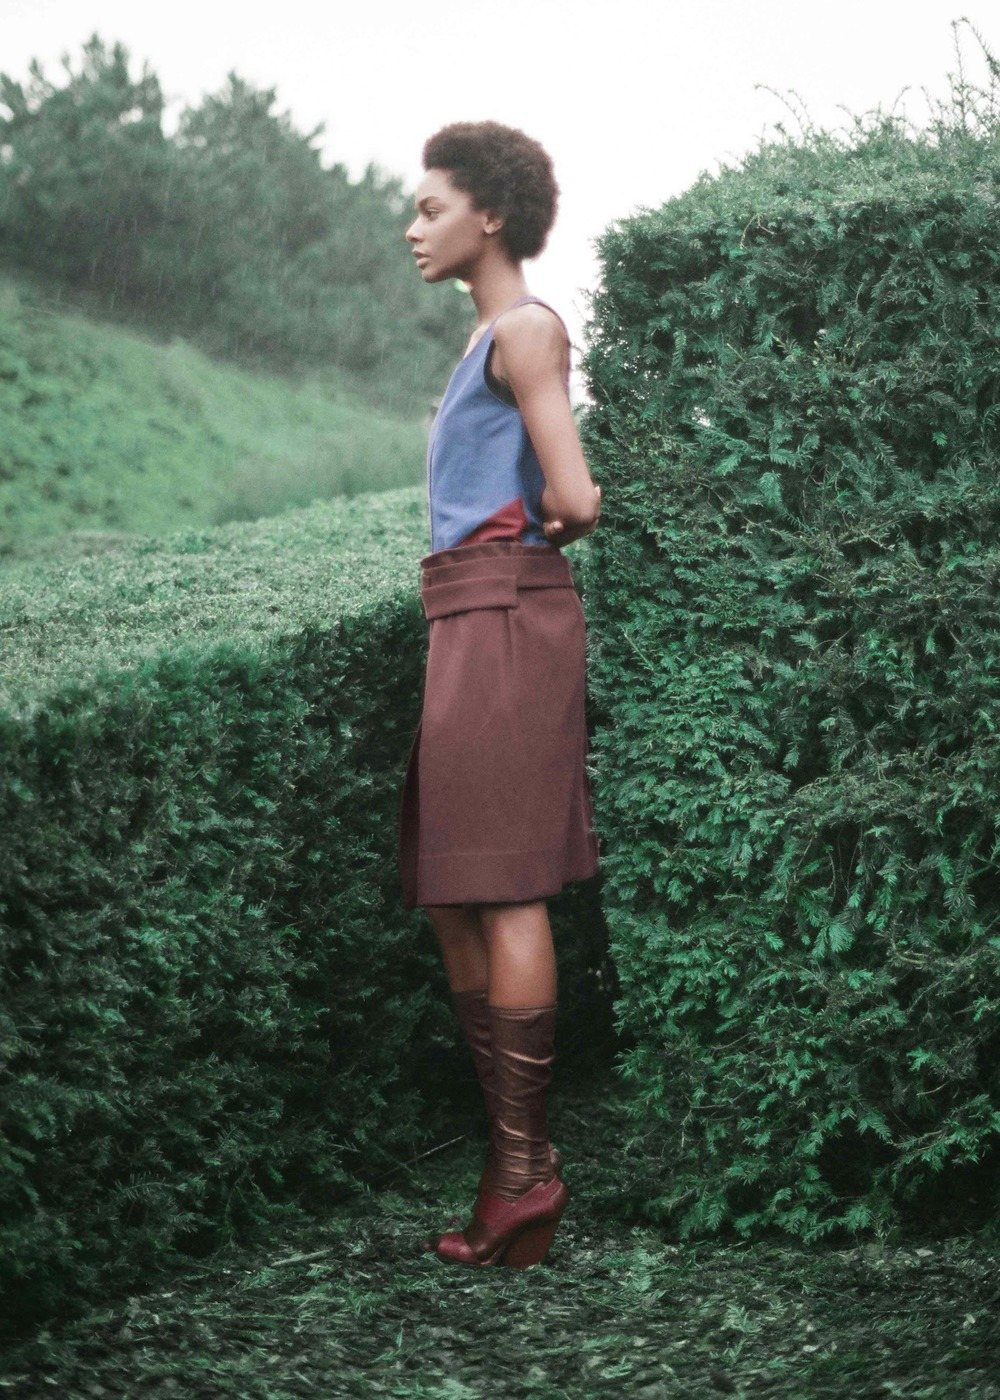 Blue and brown cotton gabardine dress, calf leather socks and sandals.